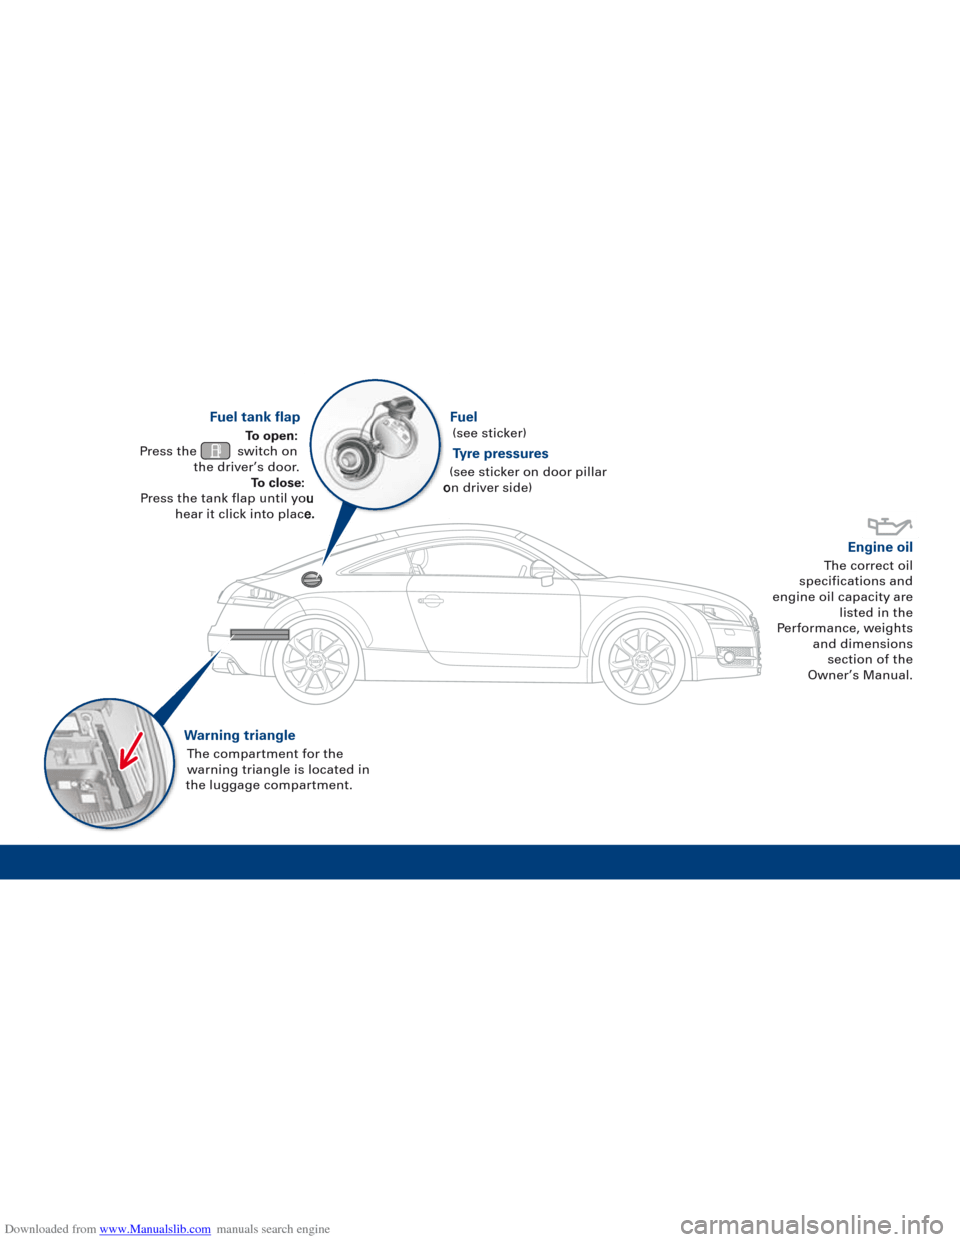 AUDI TT 2010 8J / 2.G Quick Reference Guide